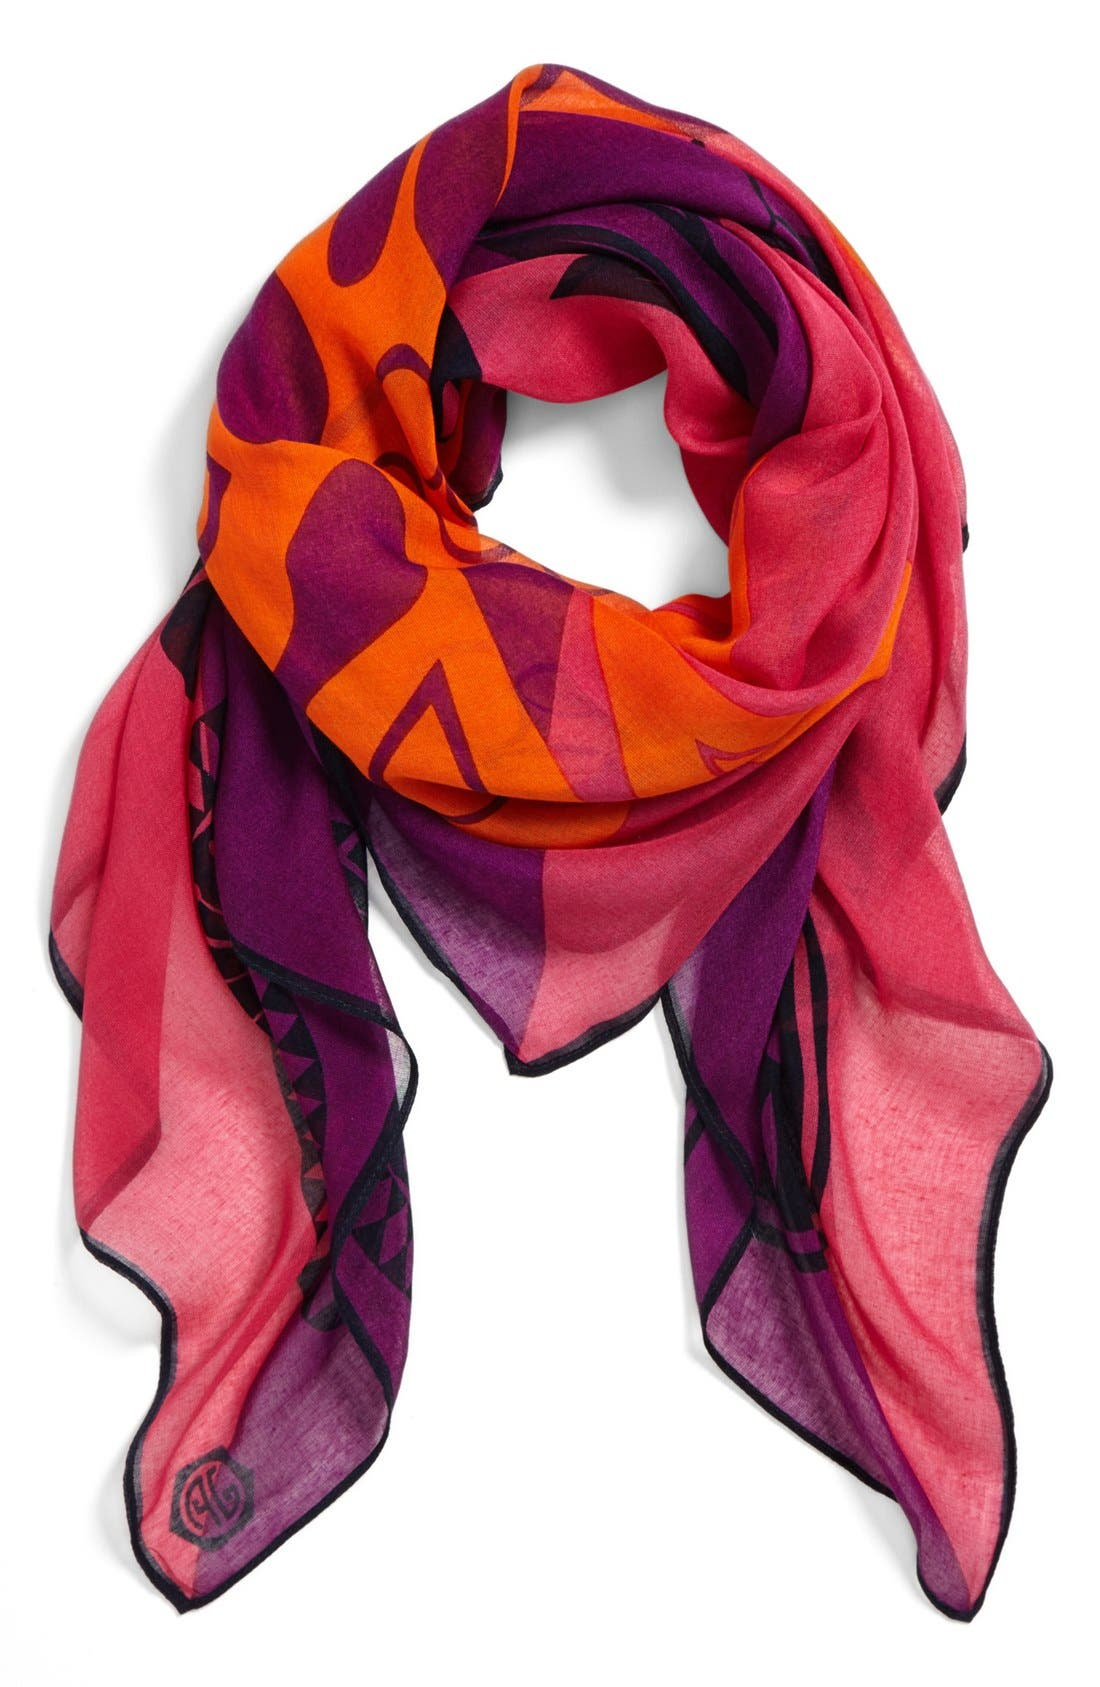 Alternate Image 1 Selected - Jonathan Adler 'Dove' Colorblock Scarf